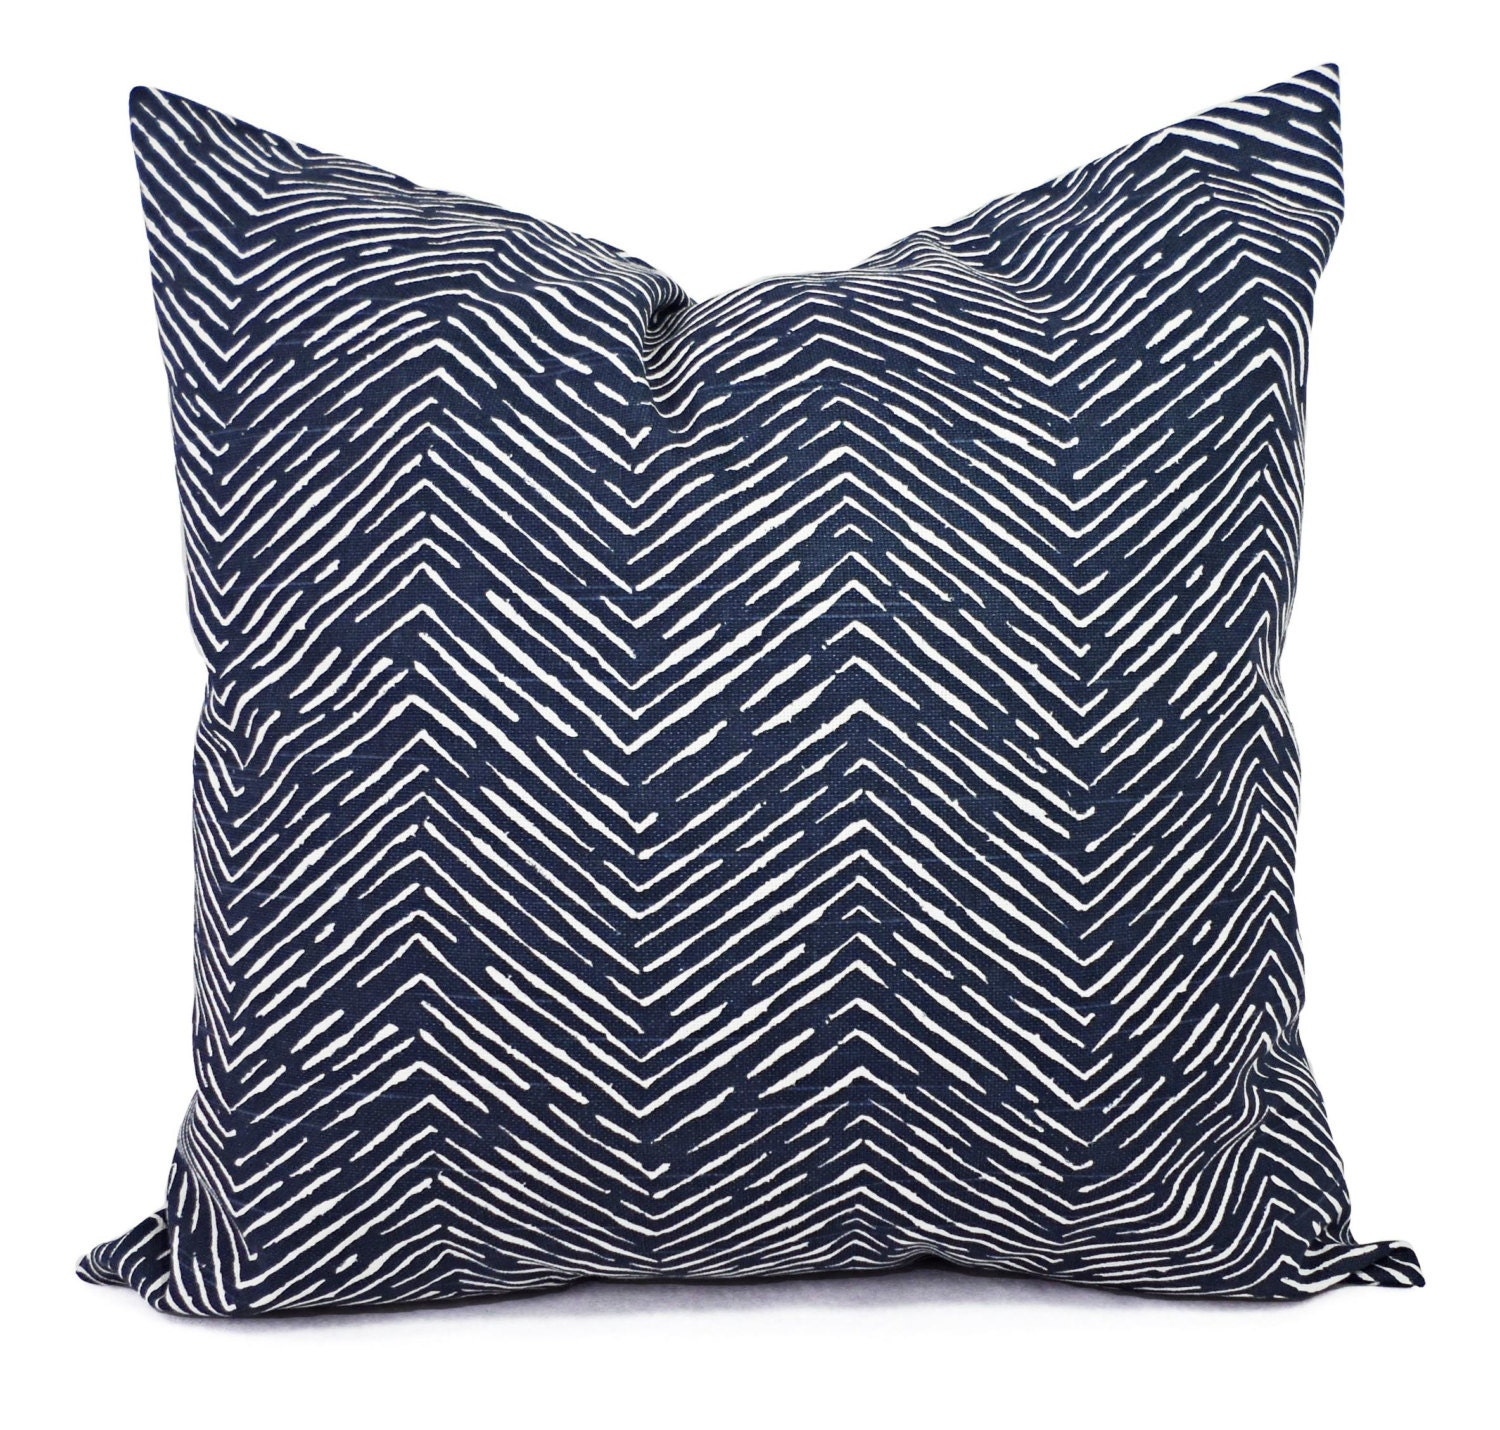 Navy Blue Throw Pillow Covers : Blue Decorative Pillow Covers Two Navy Chevron Throw Pillow